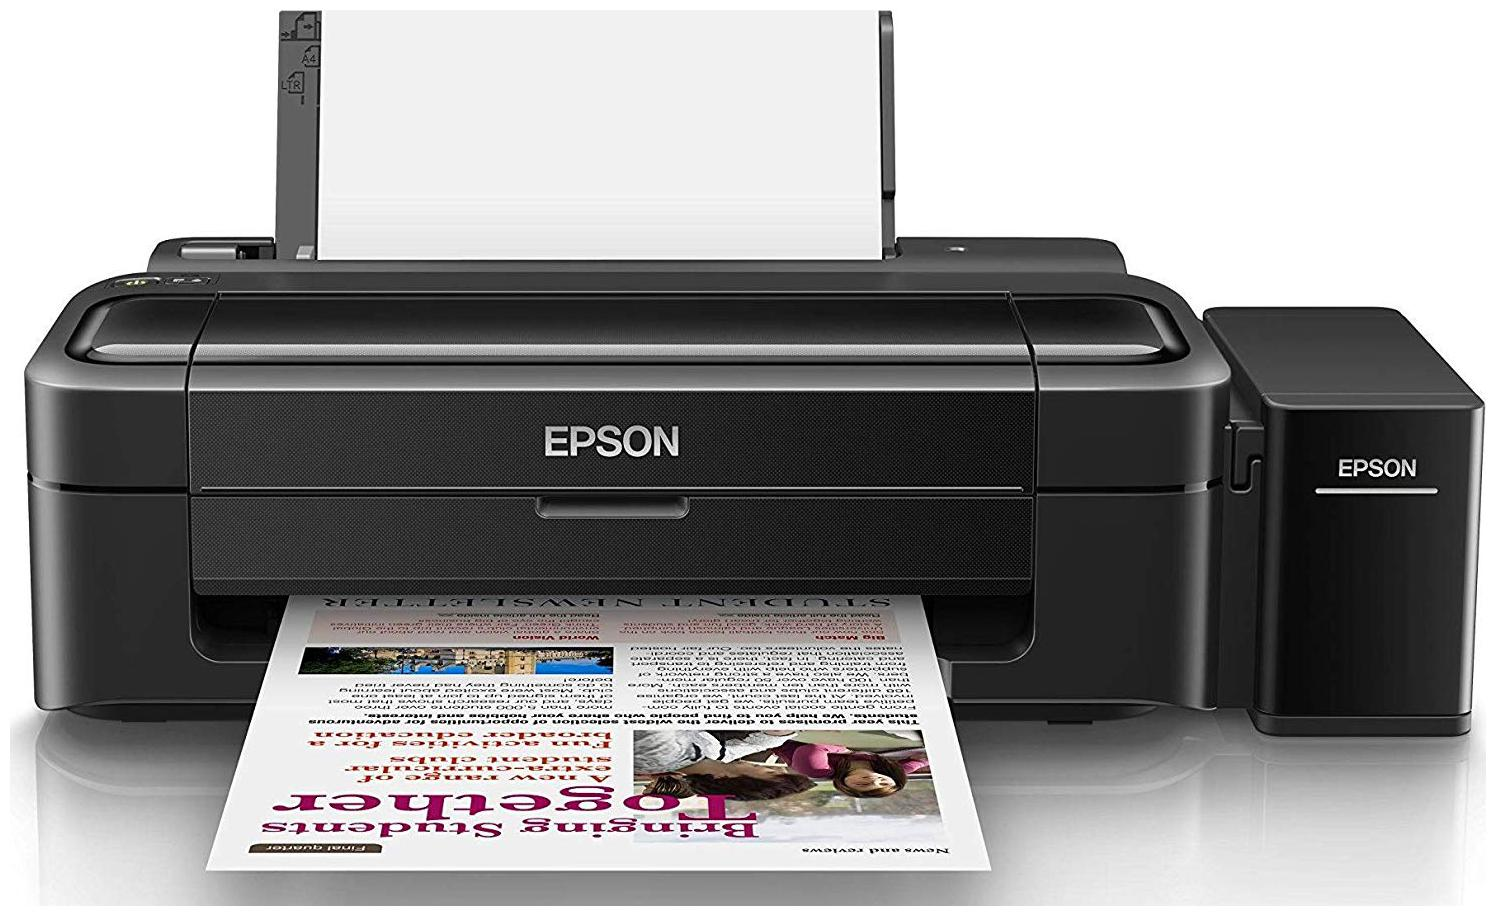 Printers | Buy Printer (प्रिंटर) at Best Price Online